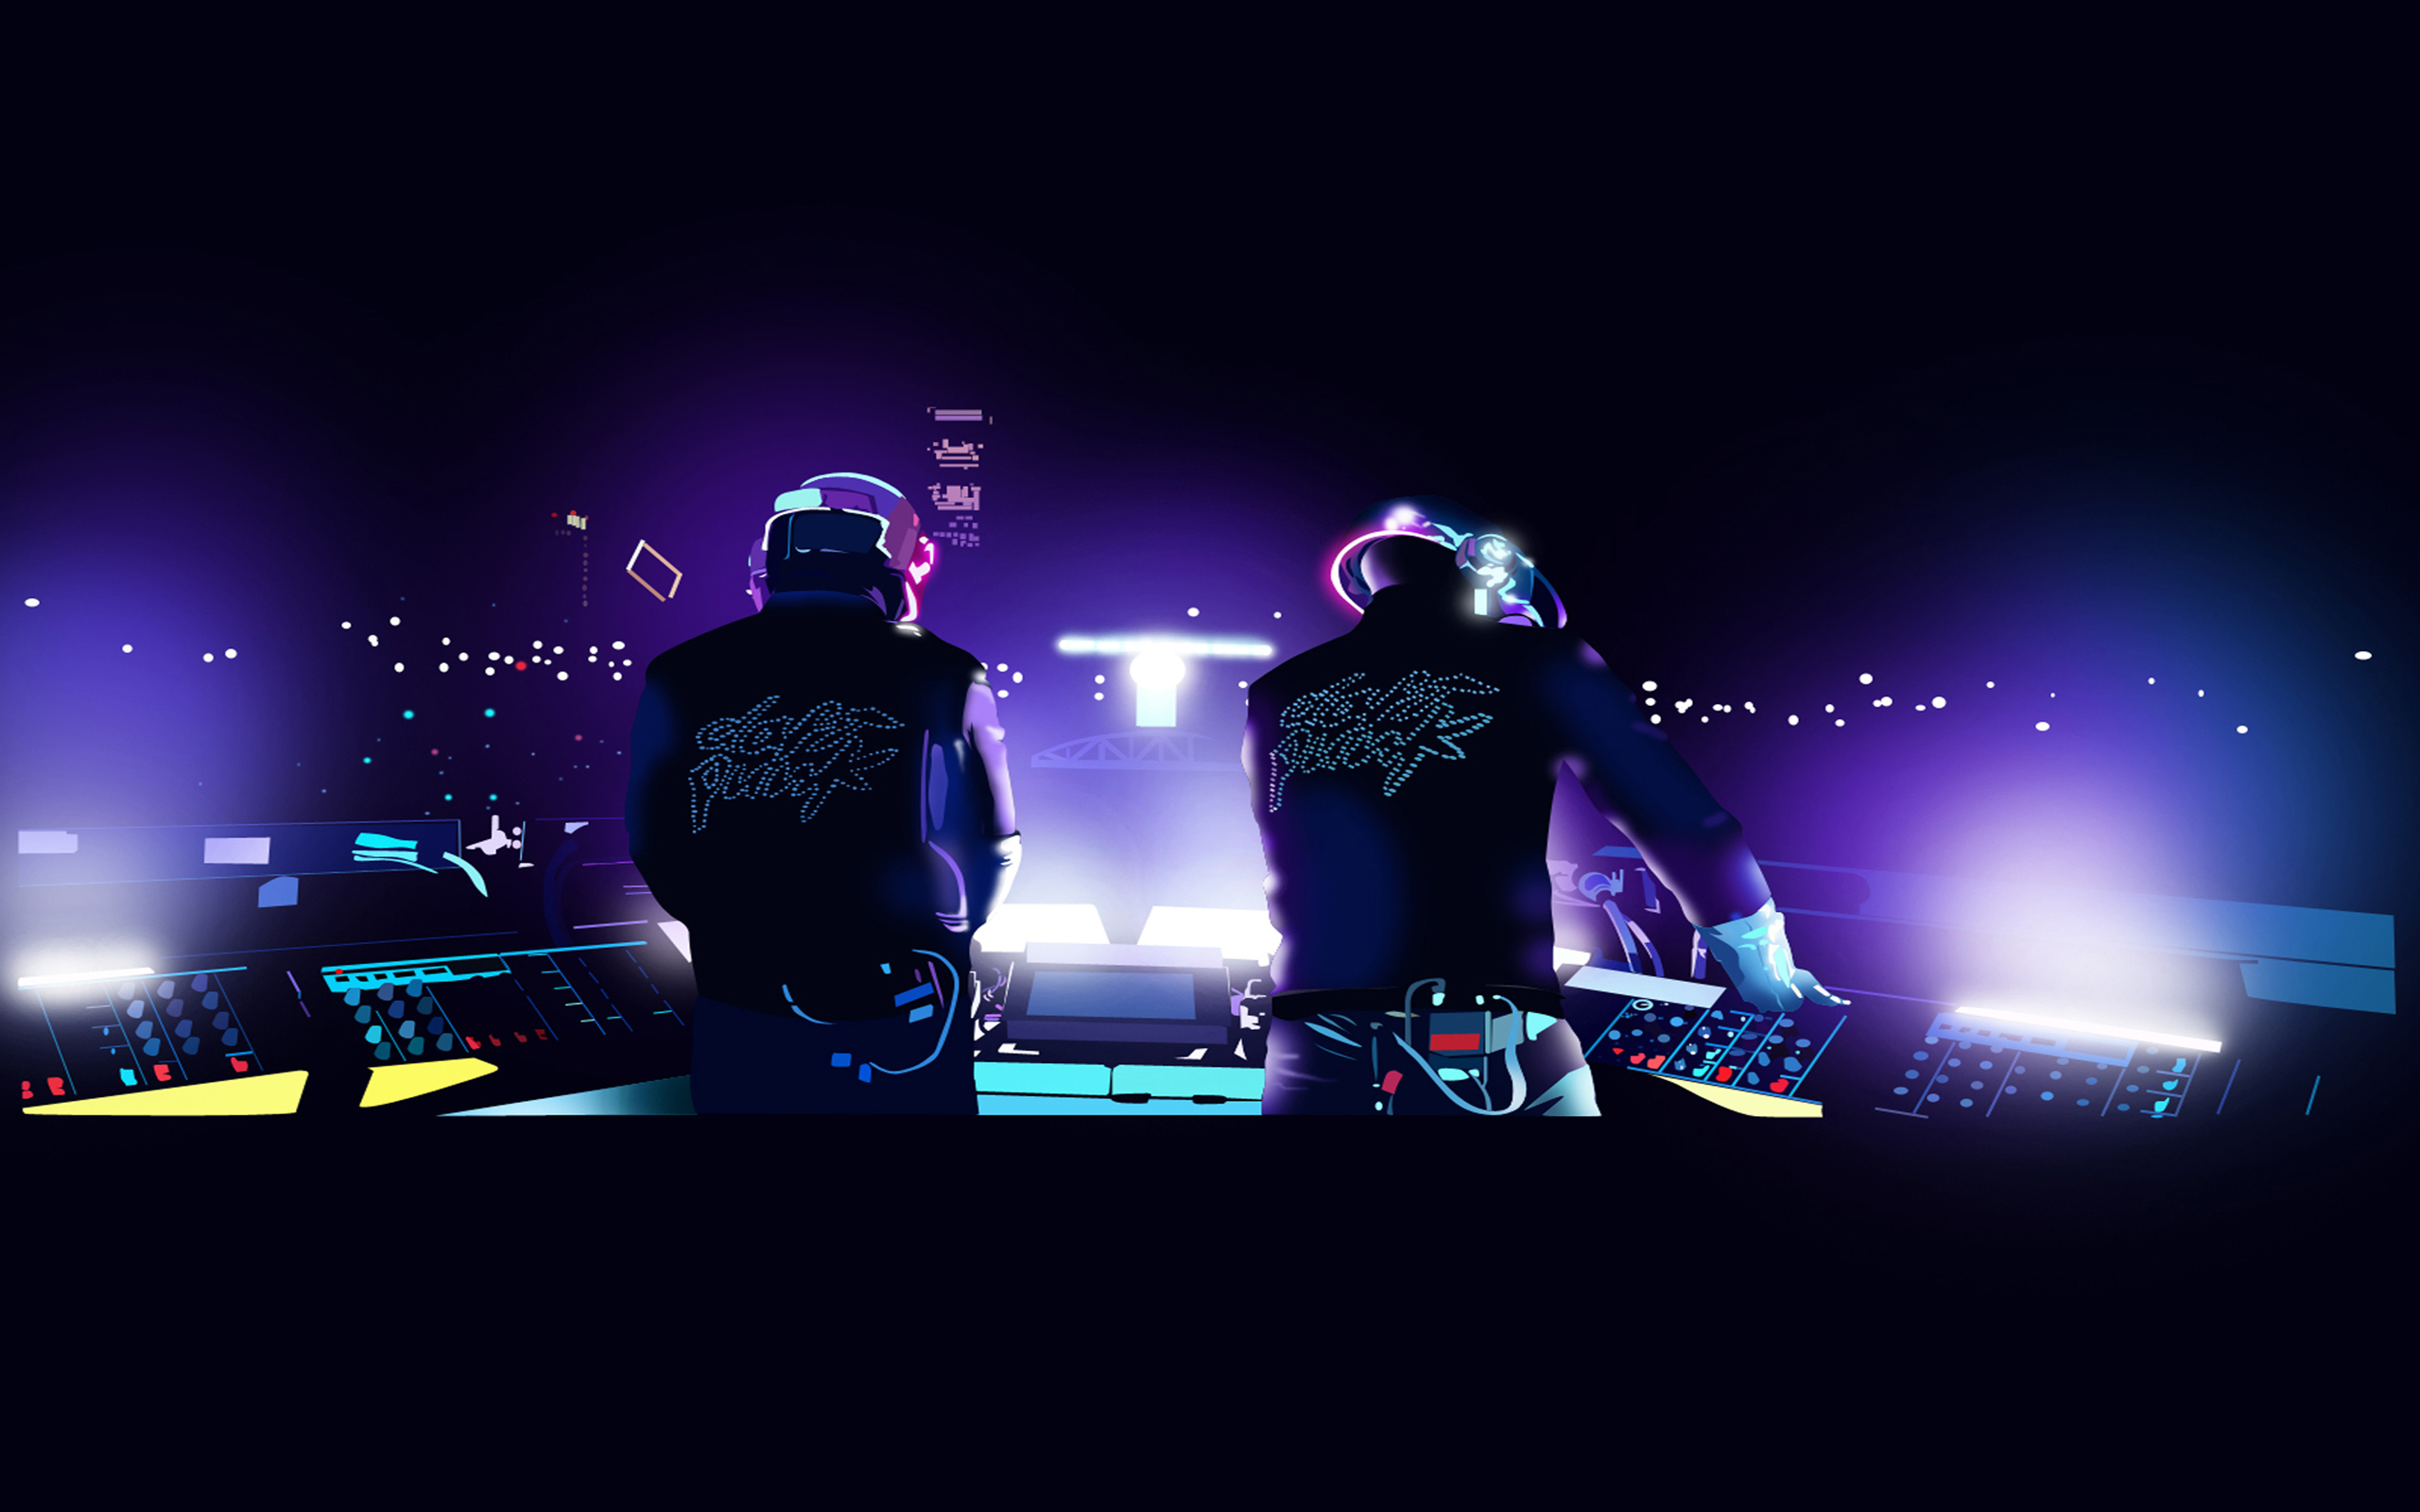 House music dj wallpaper wallpapersafari for Which house music